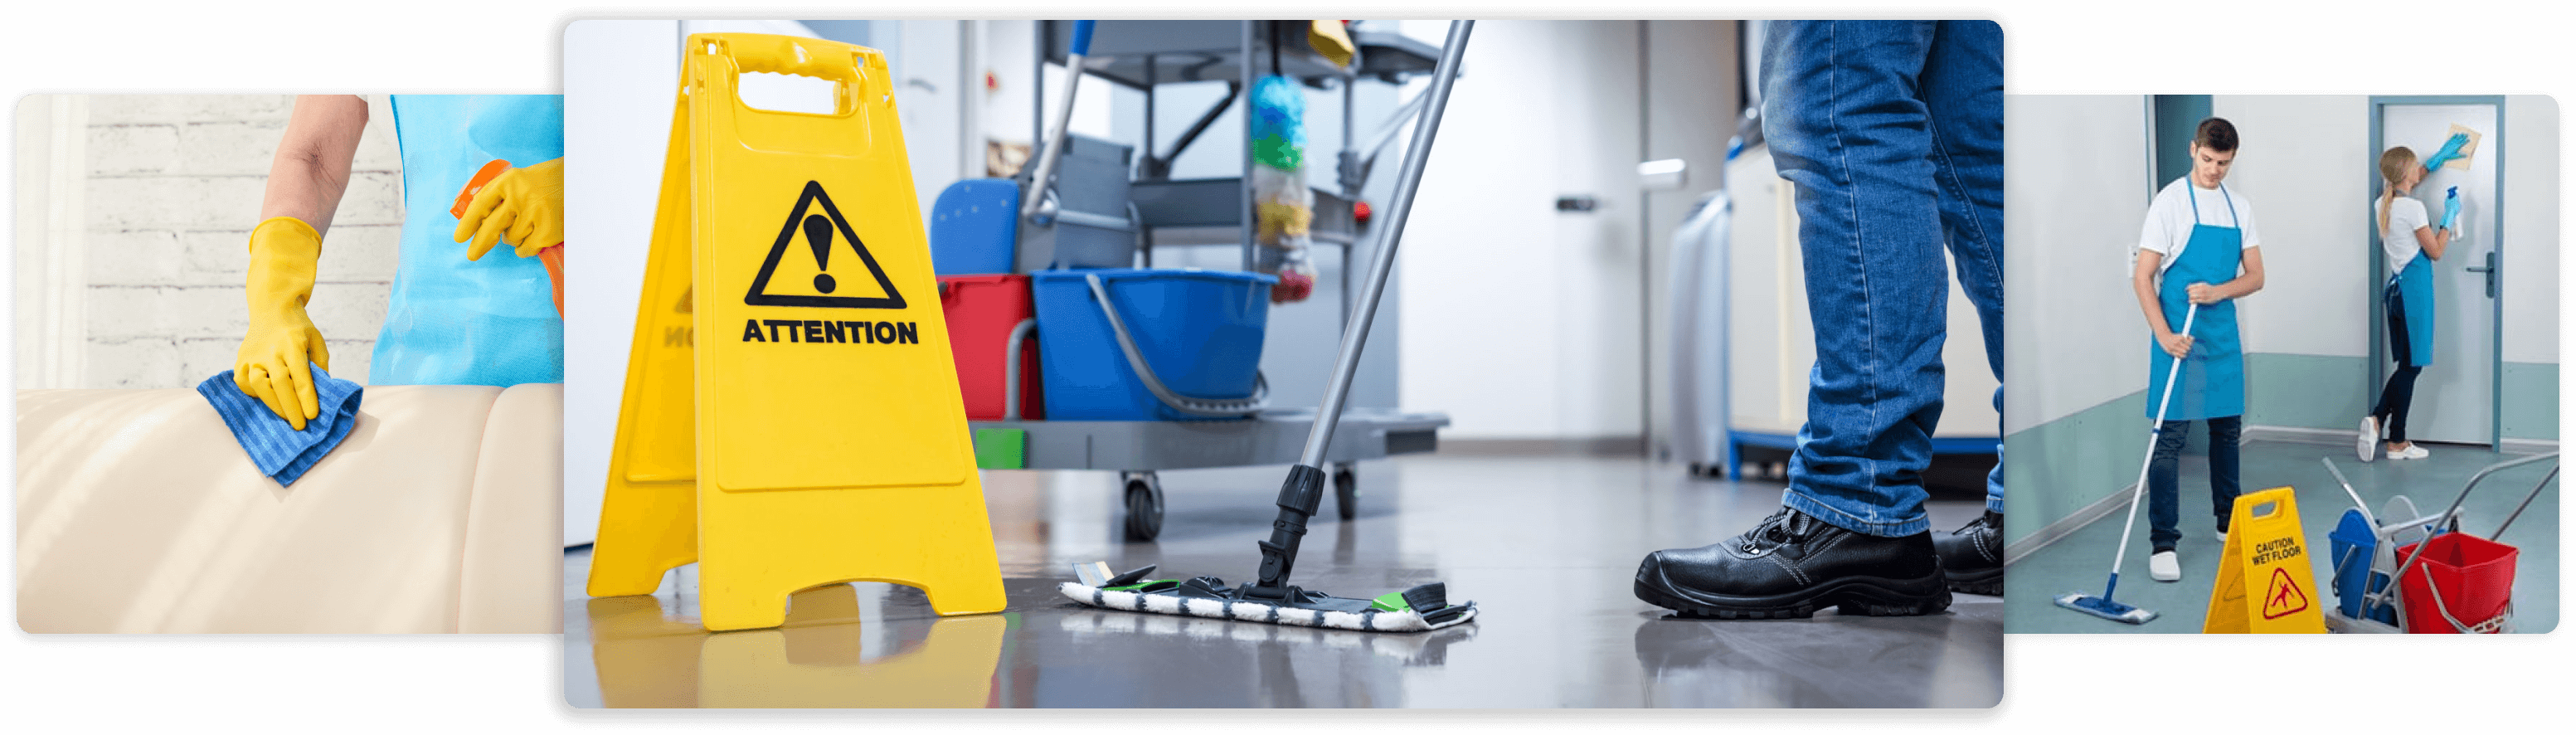 Janitorial Services Software